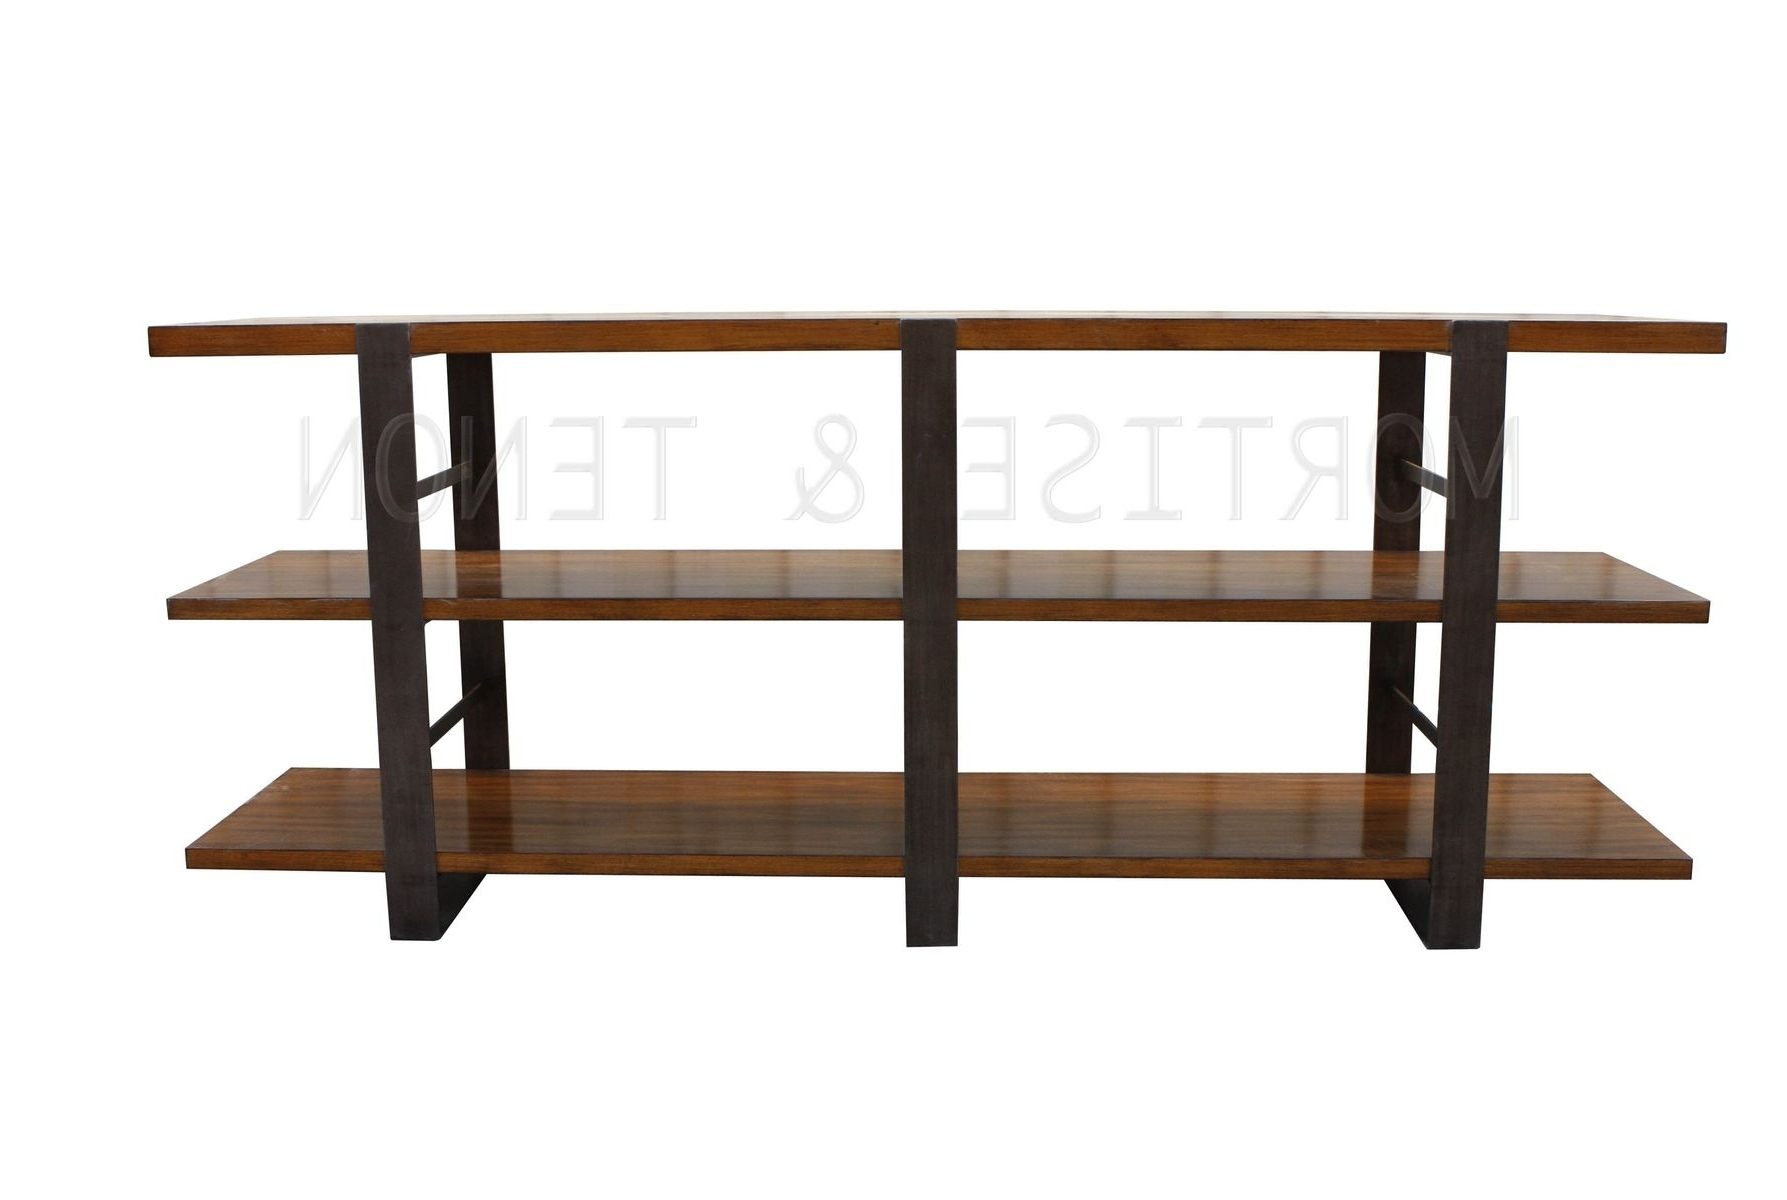 Hand Crafted Reclaimed Wood & Metal Bookcasemortise & Tenon Regarding Most Recent Reclaimed Wood Bookcases (View 4 of 15)